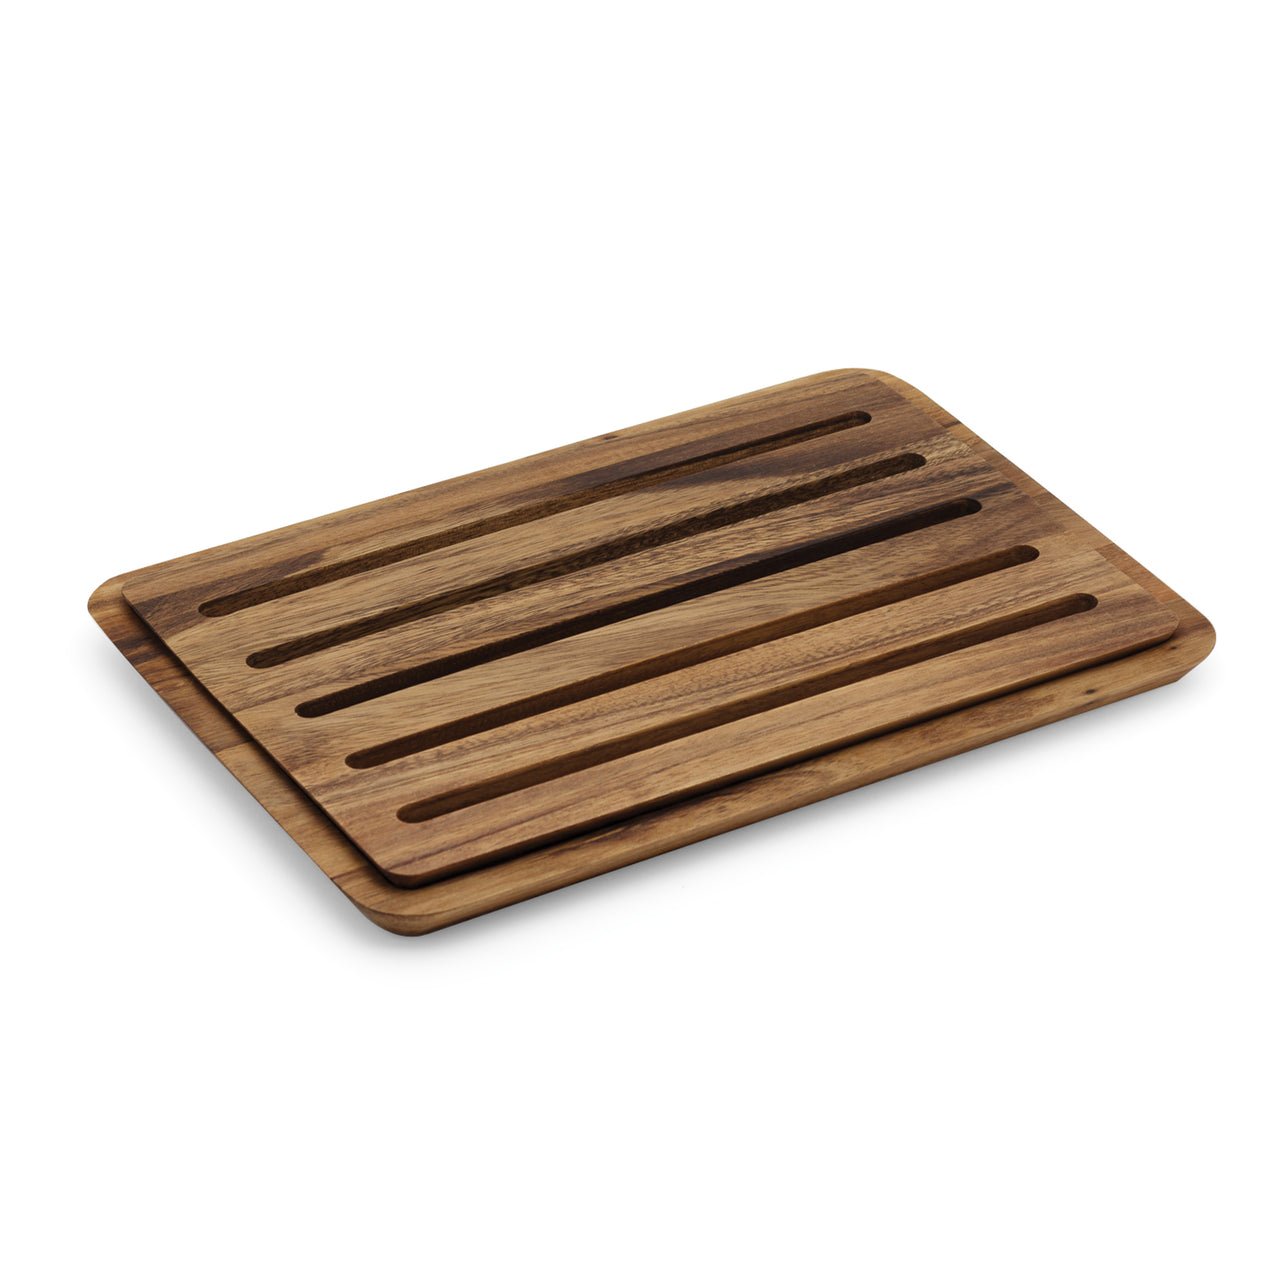 Acacia Wood - Oslo Nesting Bread Board - Ironwood Gourmet